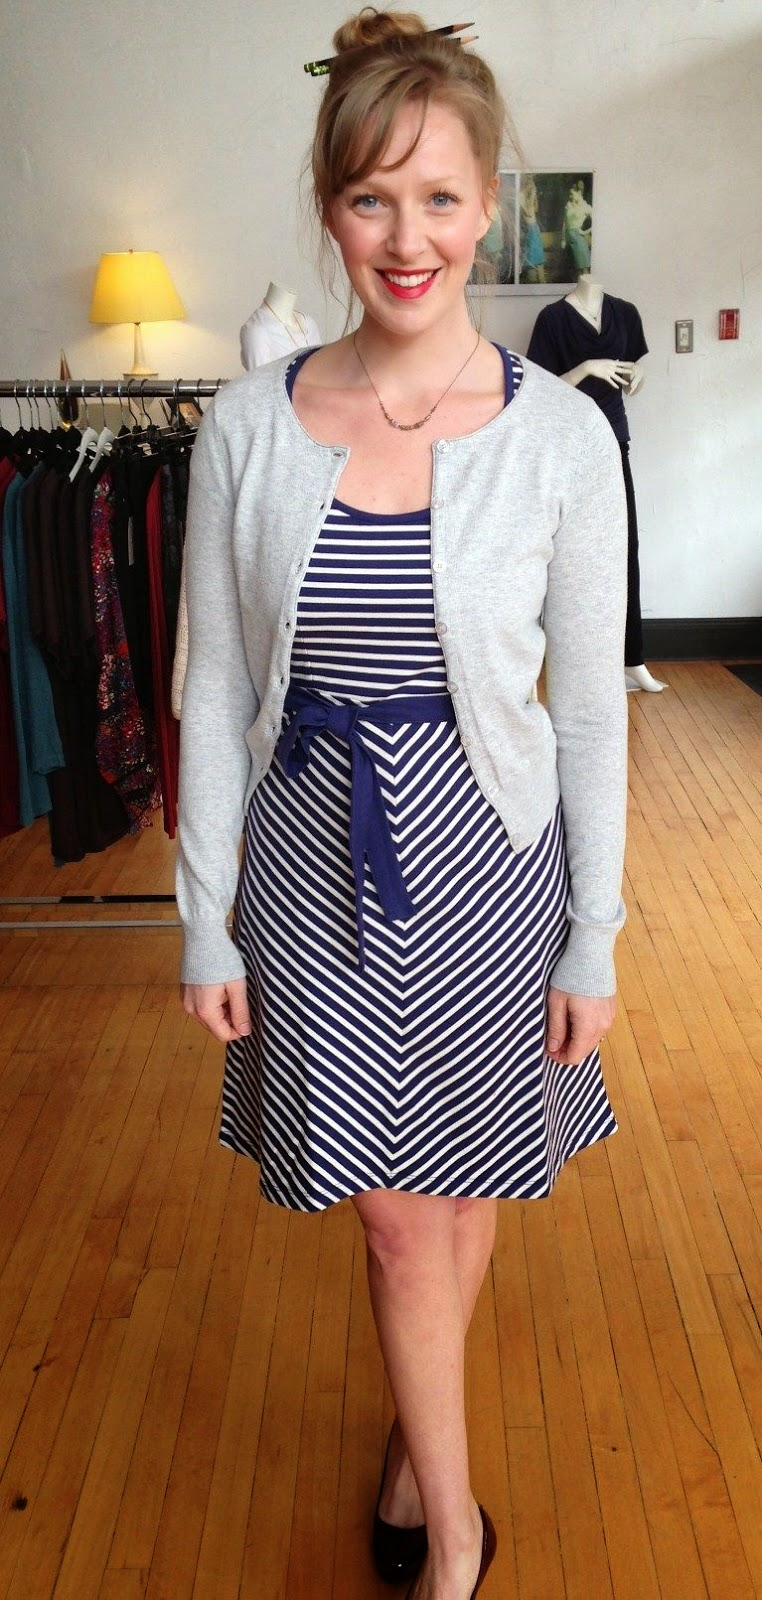 Ella dress by Louie et Lucie, Kersh cardi, and Amy Olson necklace at Folly